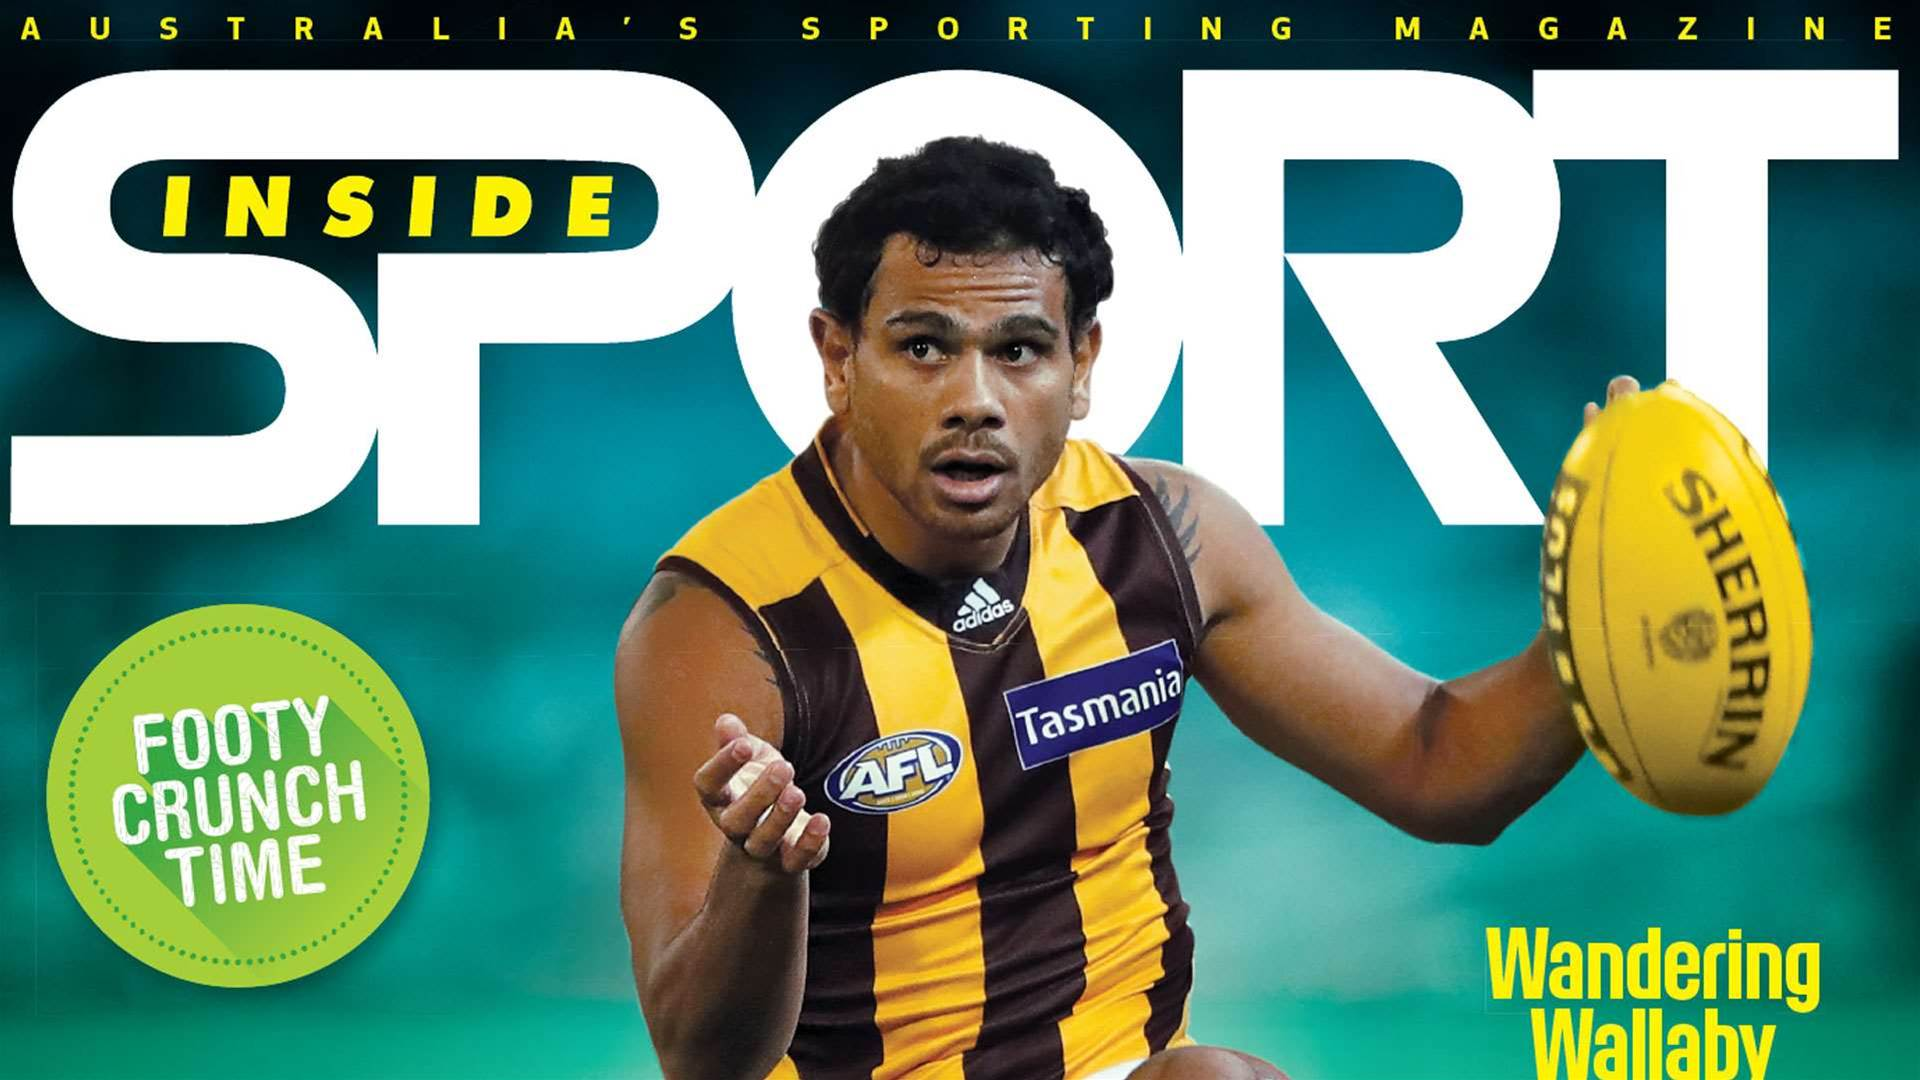 Footy crunch time issue out now